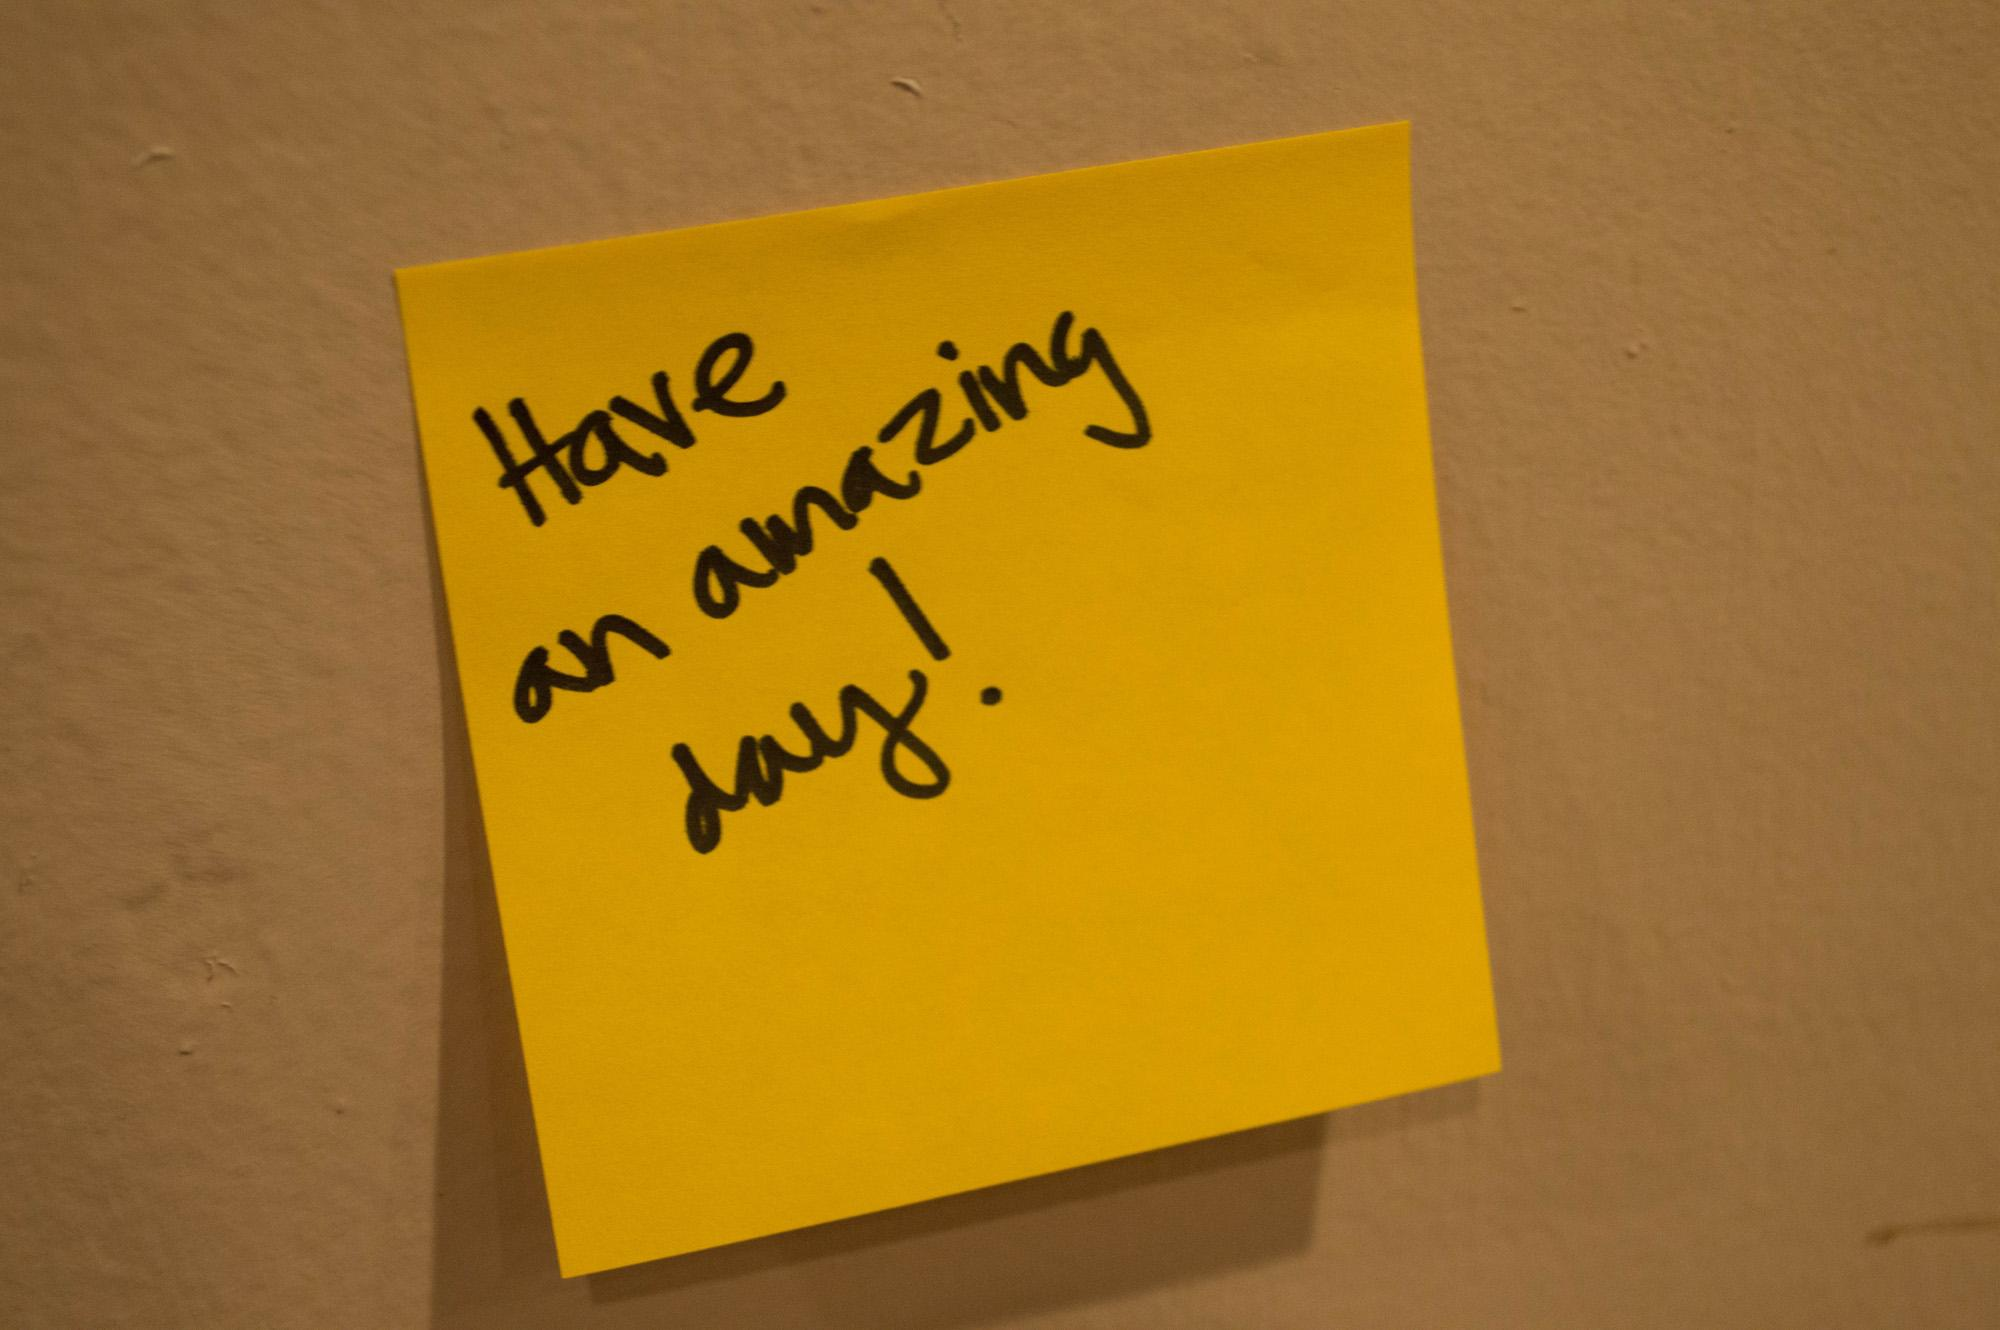 Through Post-it notes, students bring positivity to campus